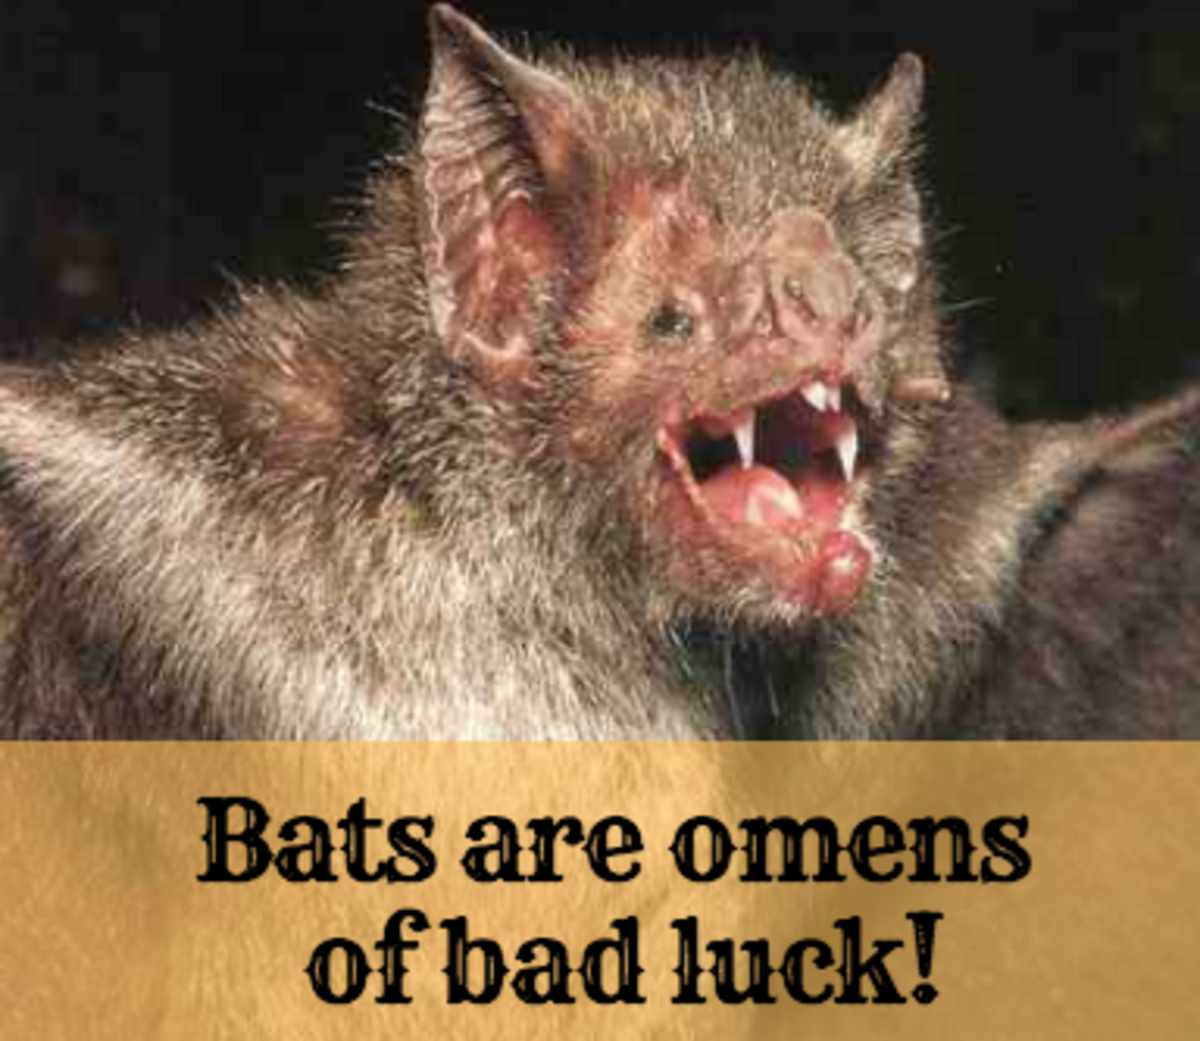 Be weary of vampire bats.